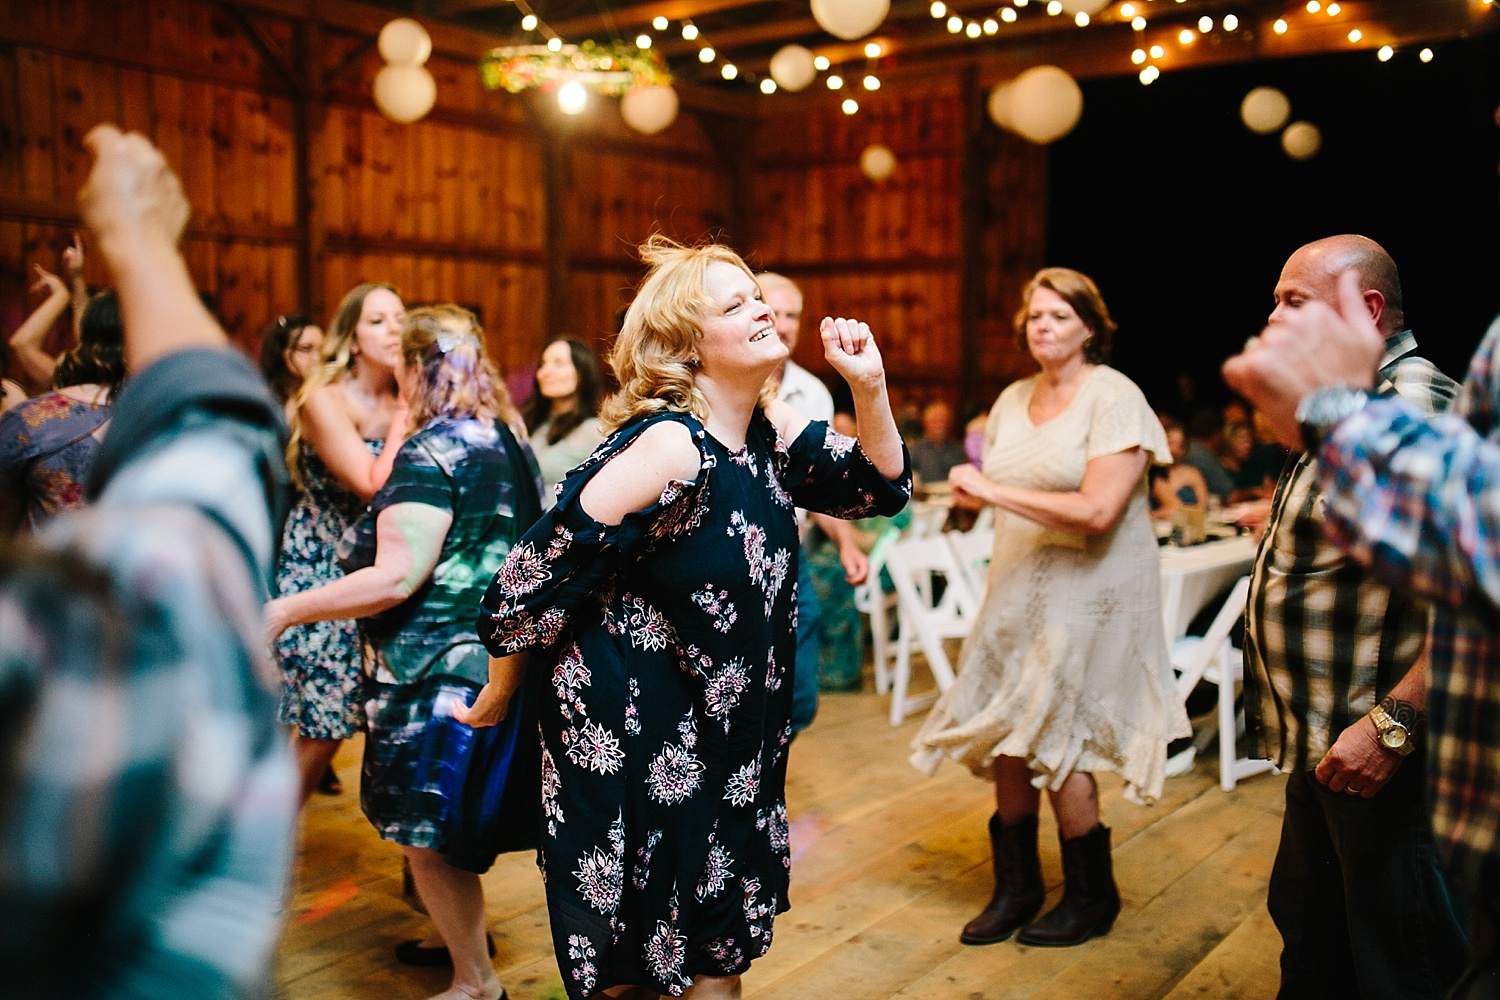 jennyryan_newbeginnings_farmstead_upstatenewyork_wedding_image140.jpg